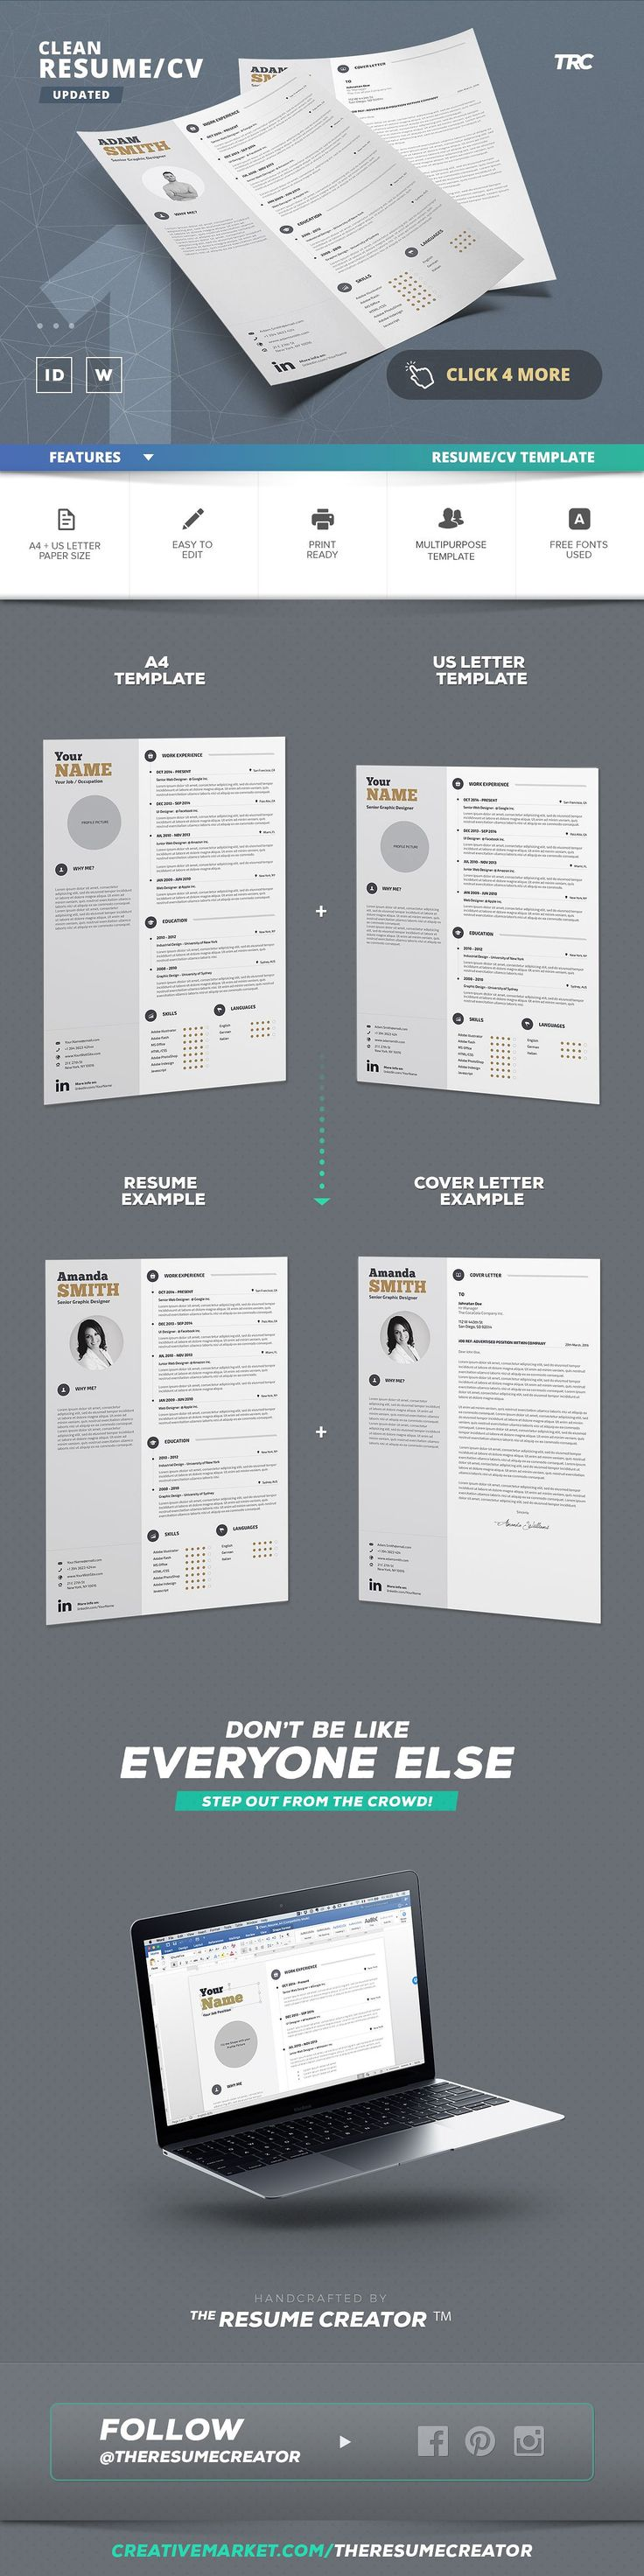 cover letter for sales manager position%0A Clean Resume Cv Template Volume   by TheResumeCreator on  creativemarket   resumecreator  theresumecreator